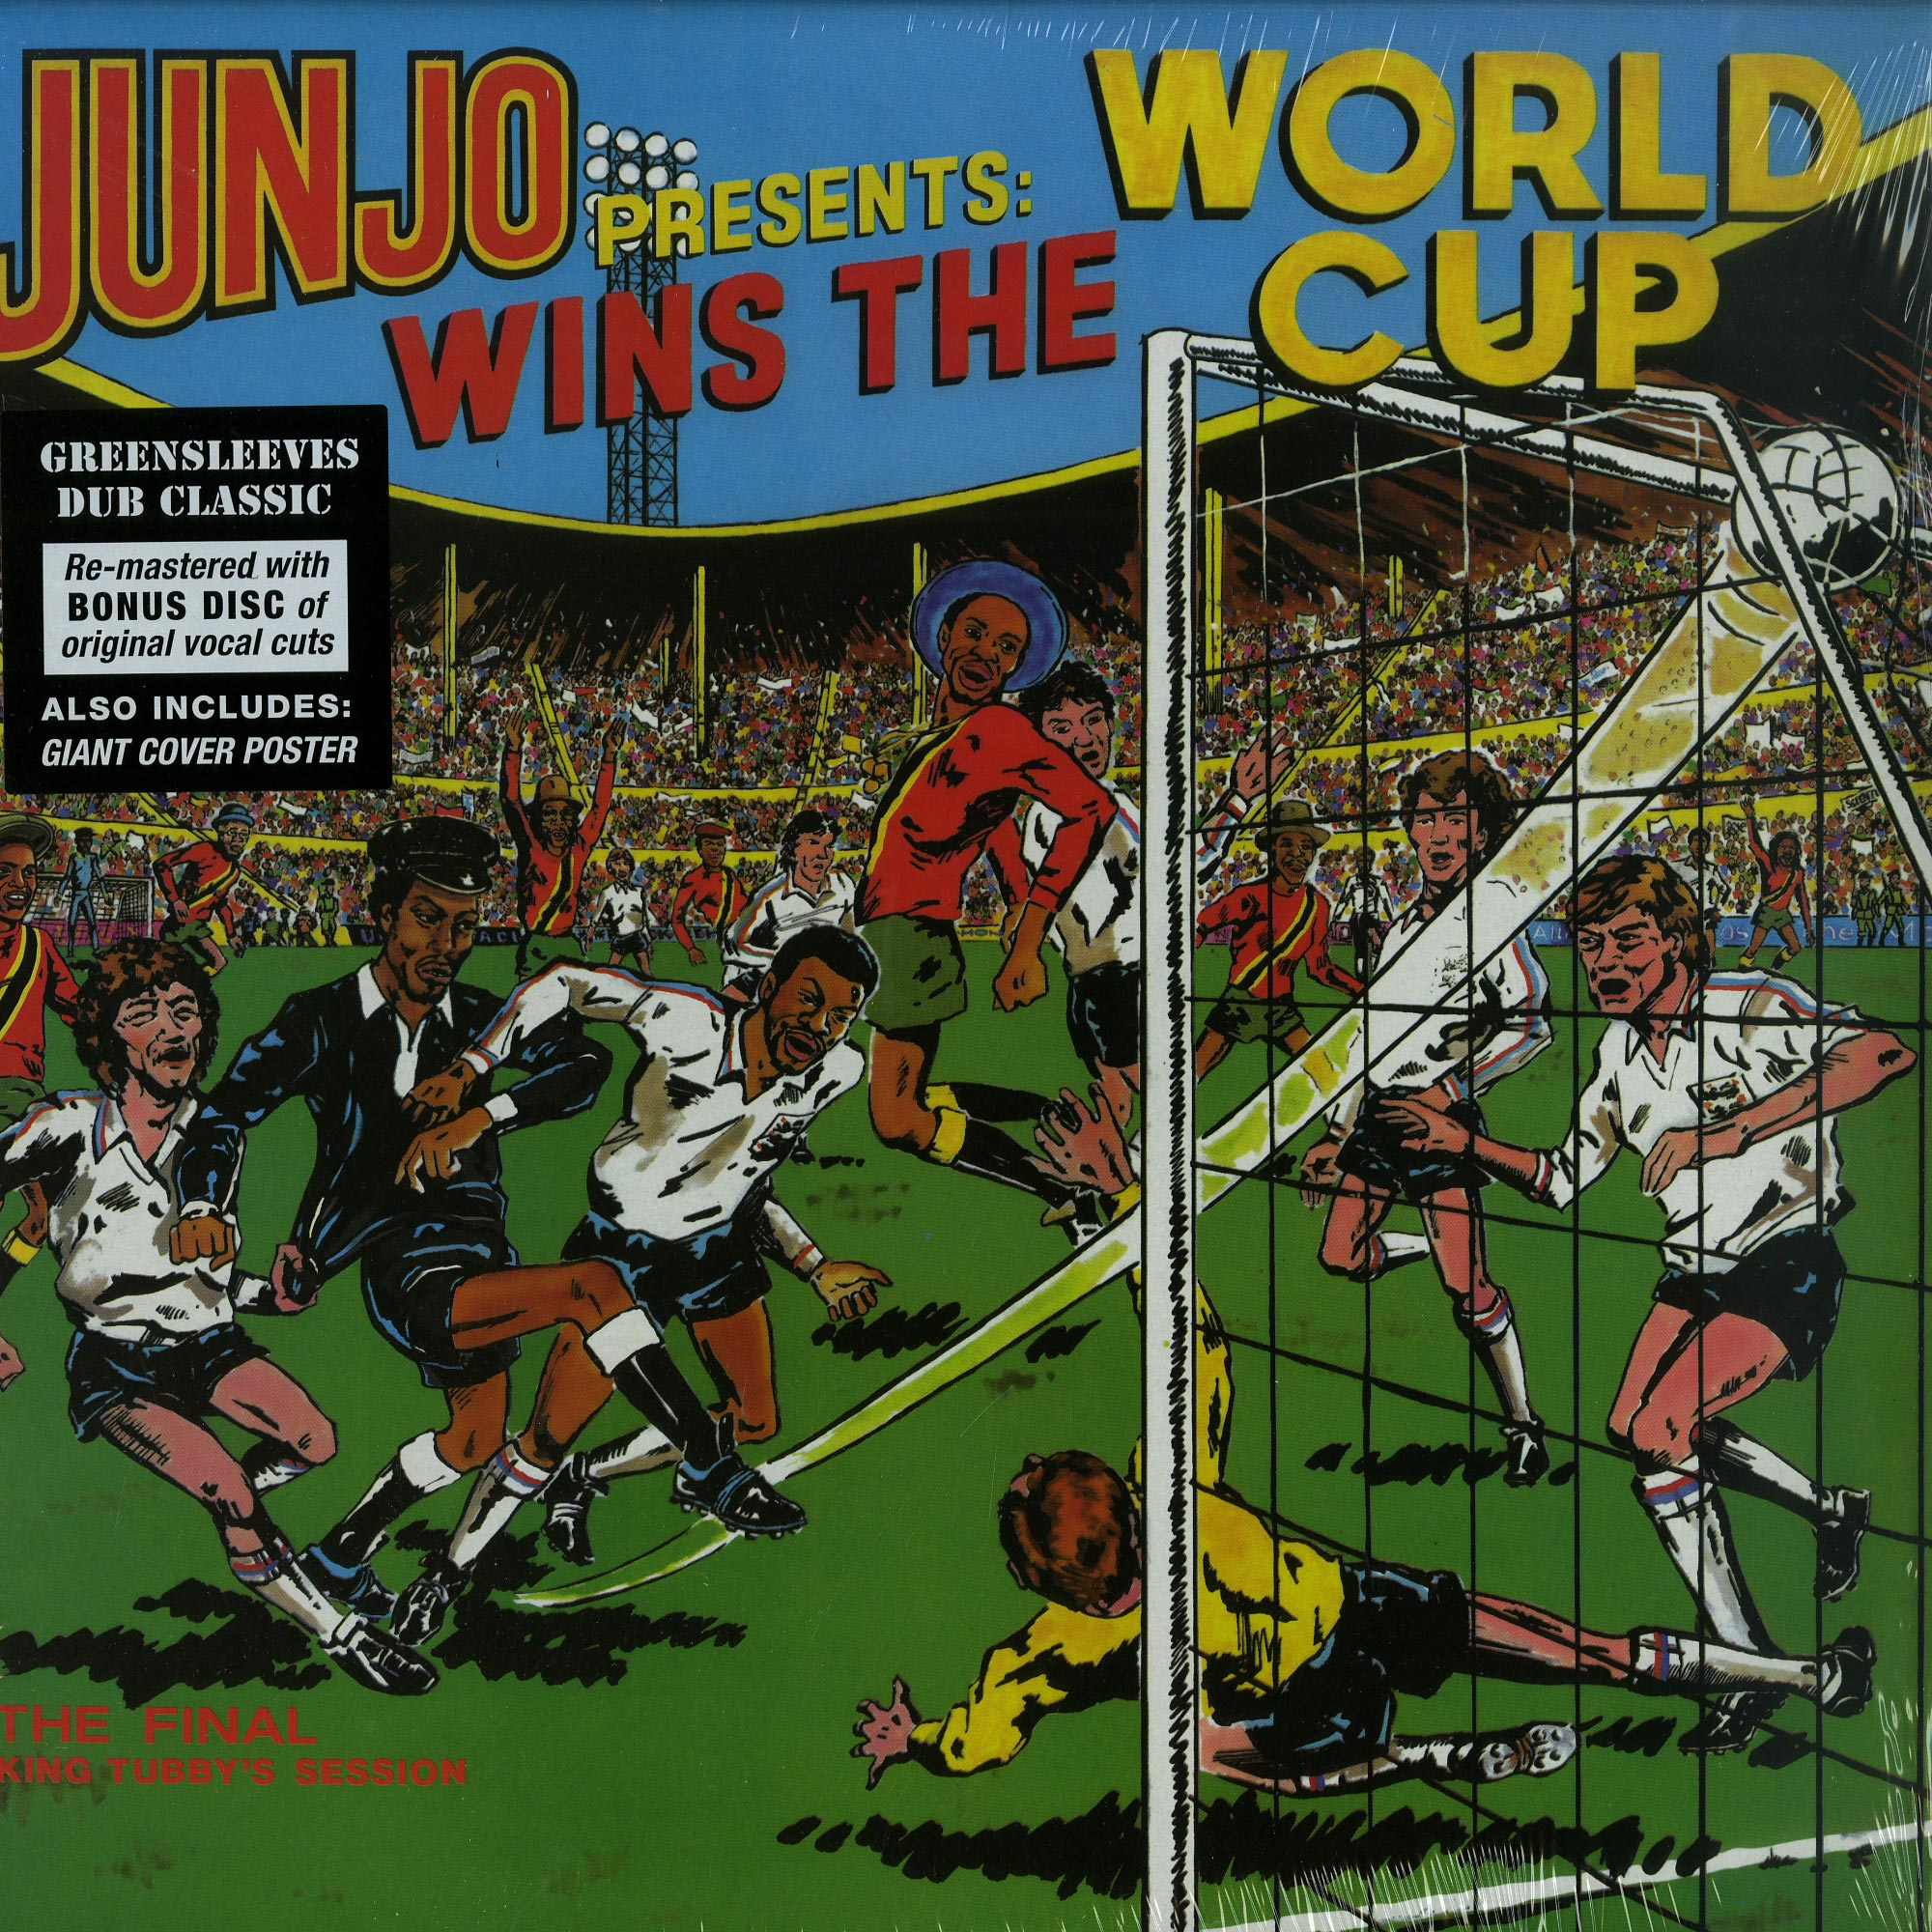 Henry Junjo Lawes - JUNJO PRESENTS: WINS THE WORLD CUP